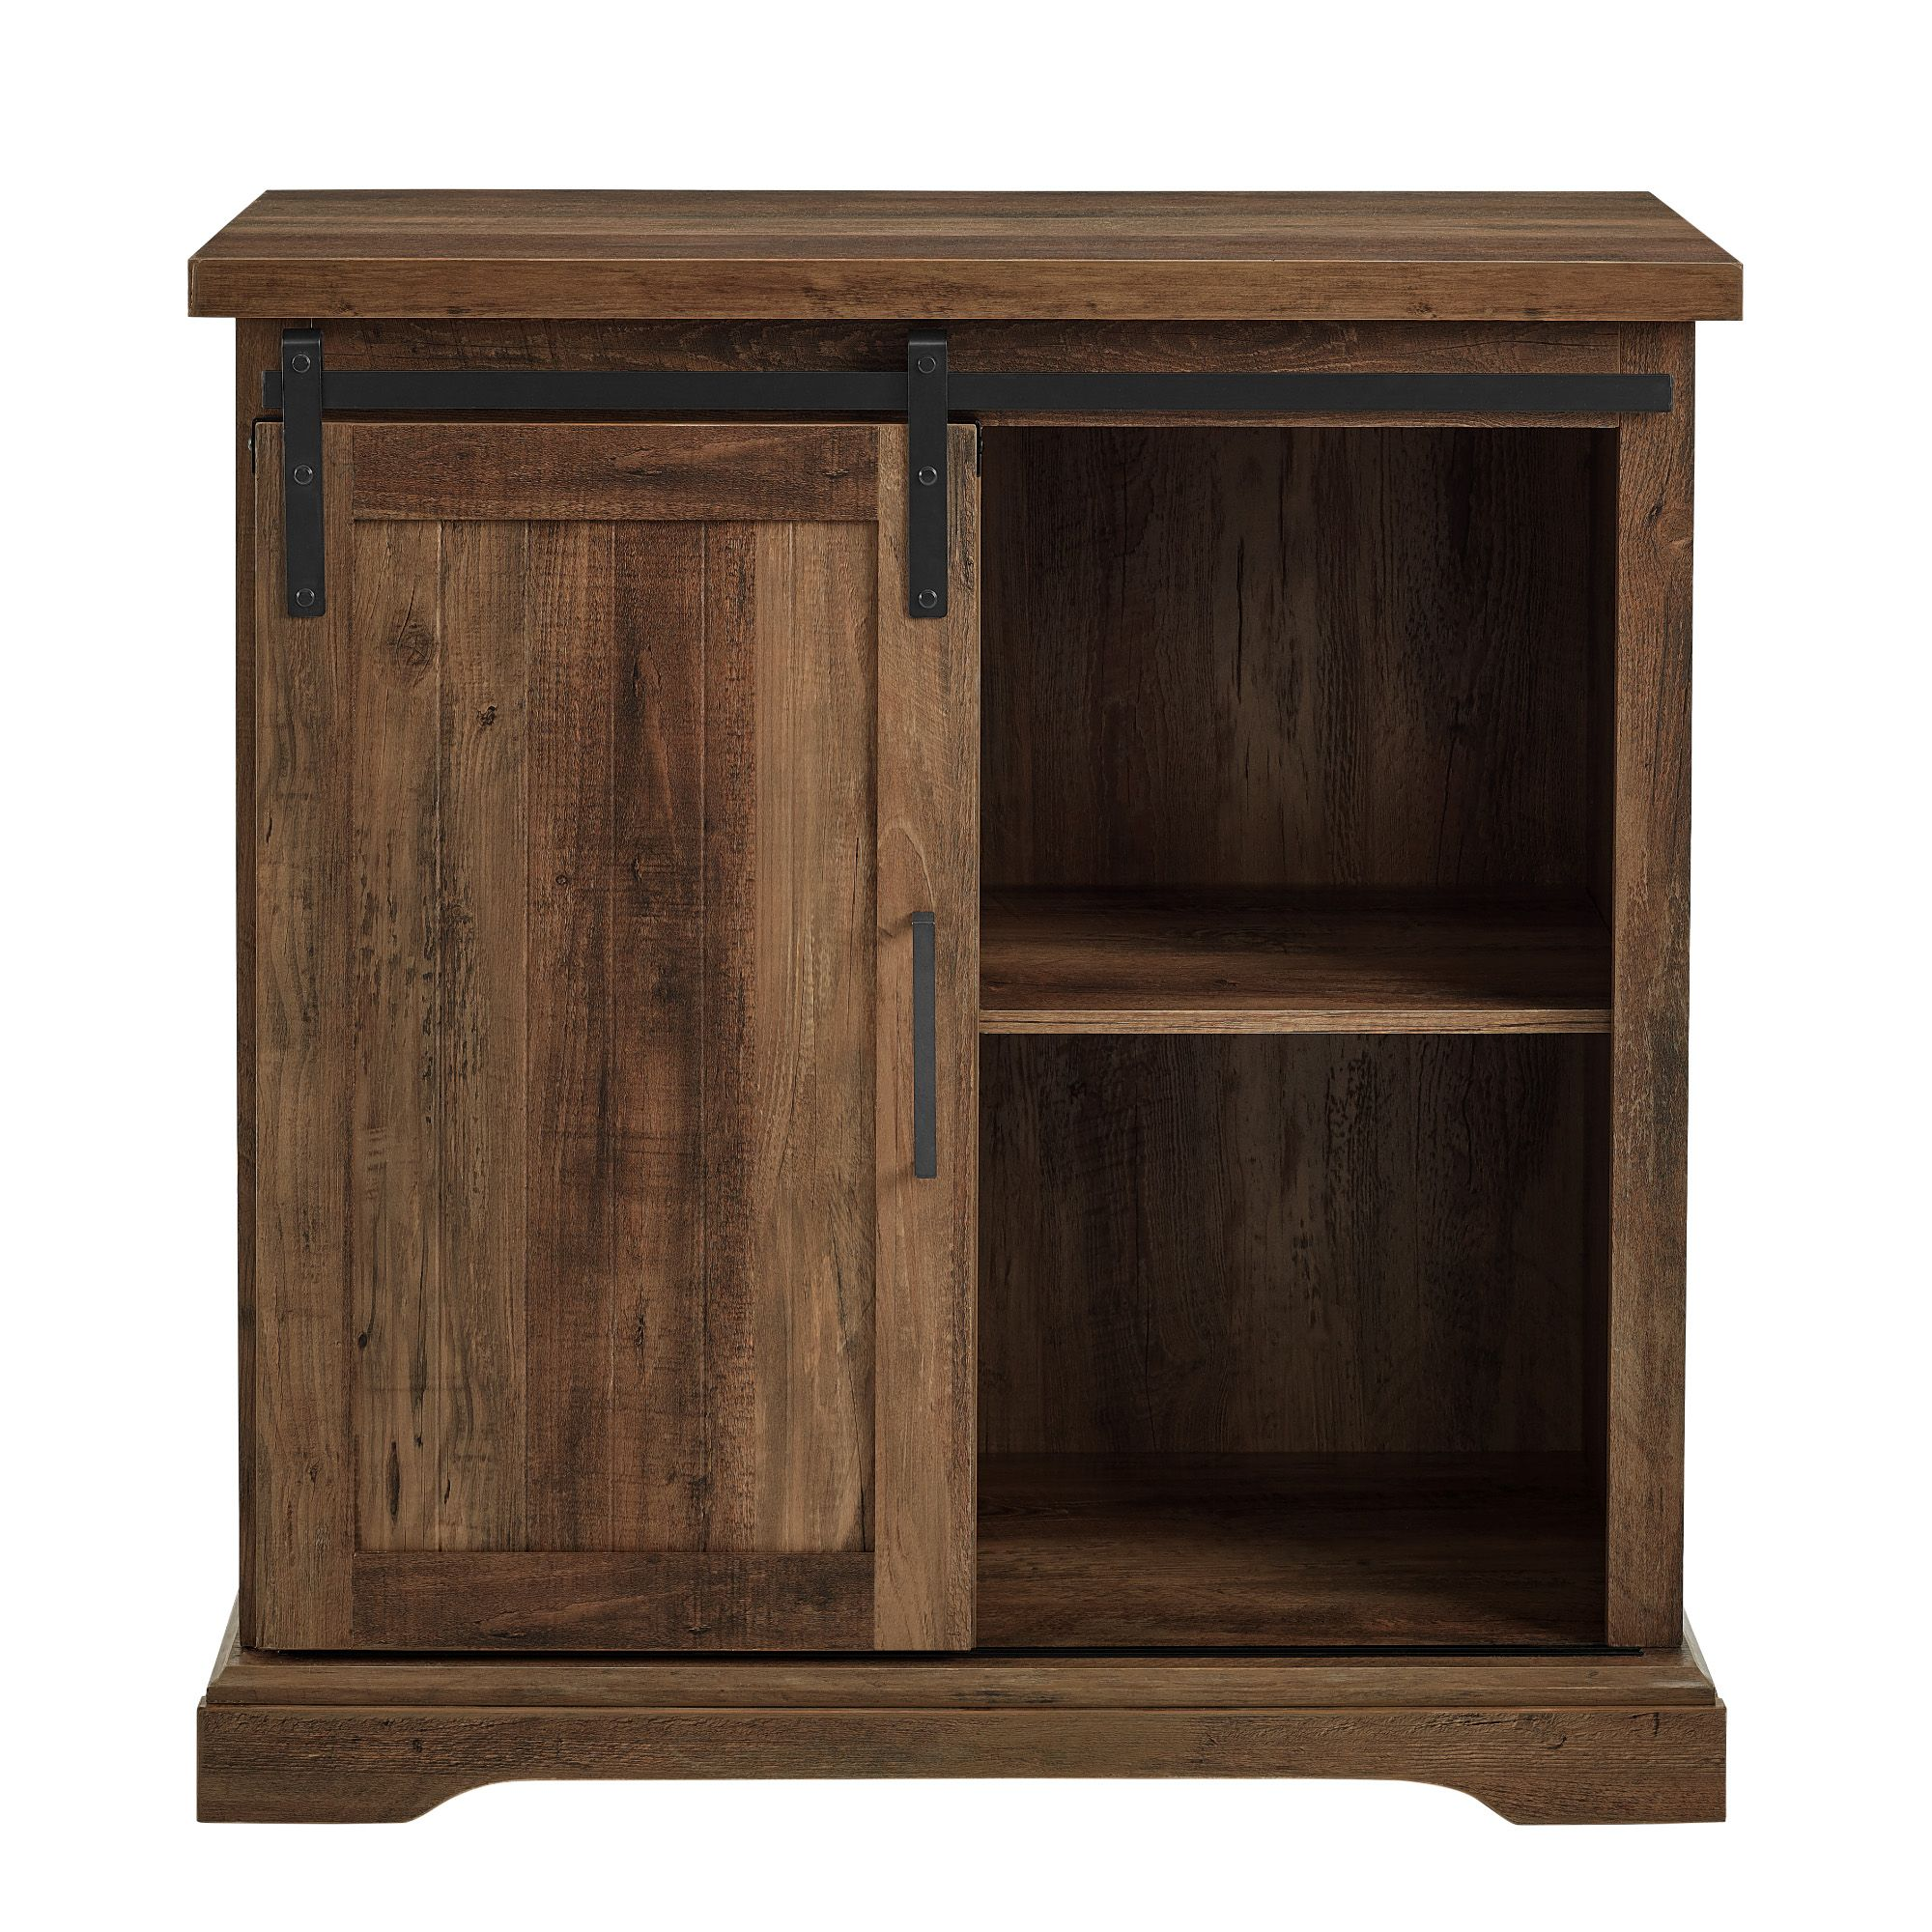 Walker Edison Furniture AF32ALGRDRO 32 in. Modern Farmhouse Buffet Rustic Oak